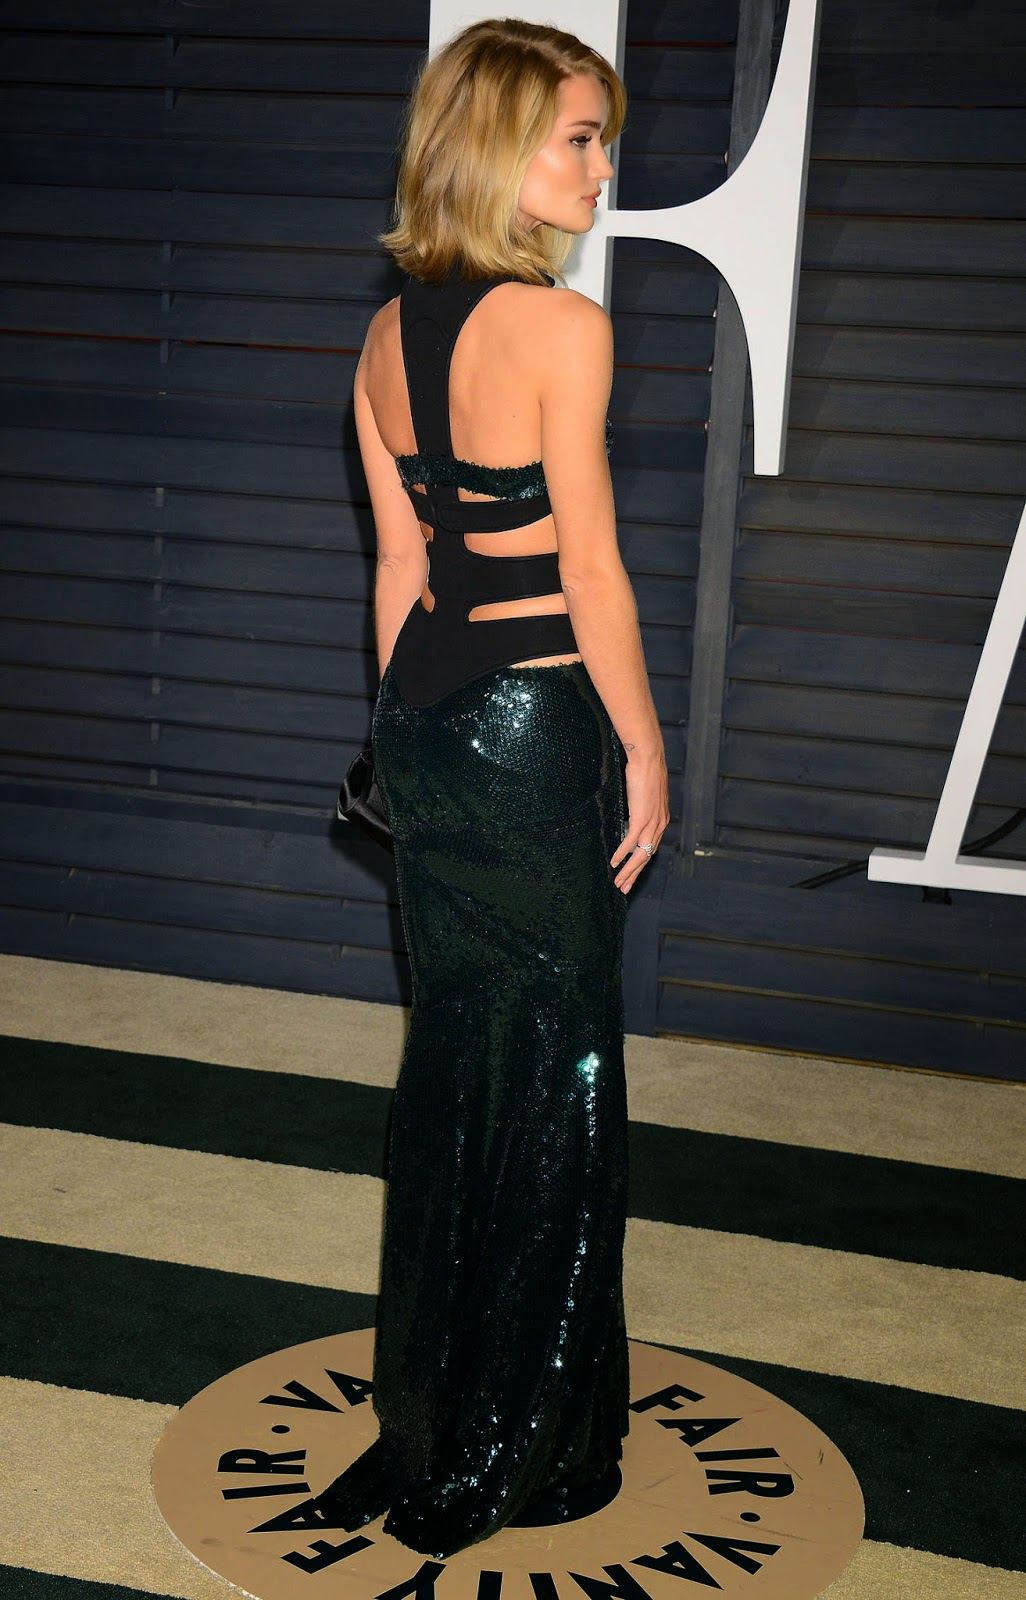 Rosie Huntington-Whiteley dazzles in a sequinned emerald dress at the 2015 Vanity Fair Oscars Party